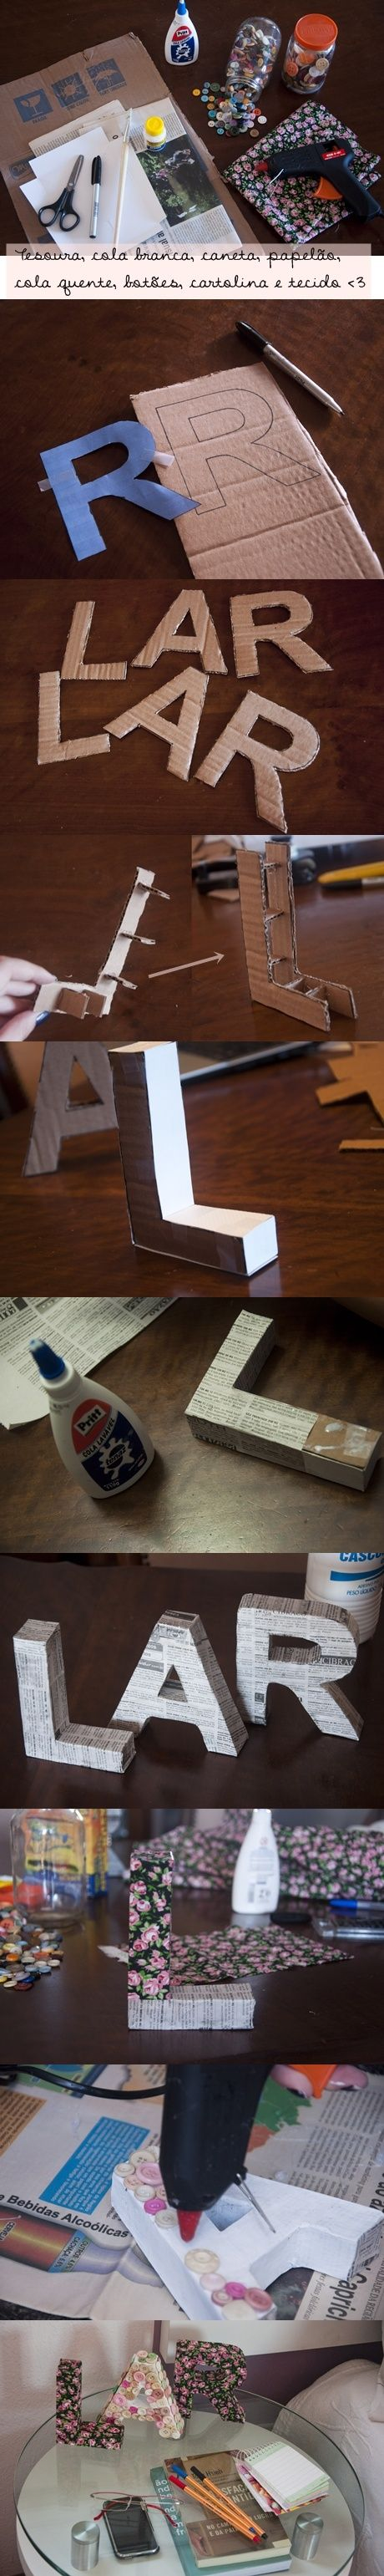 Step by step on how to create a 3D letters.